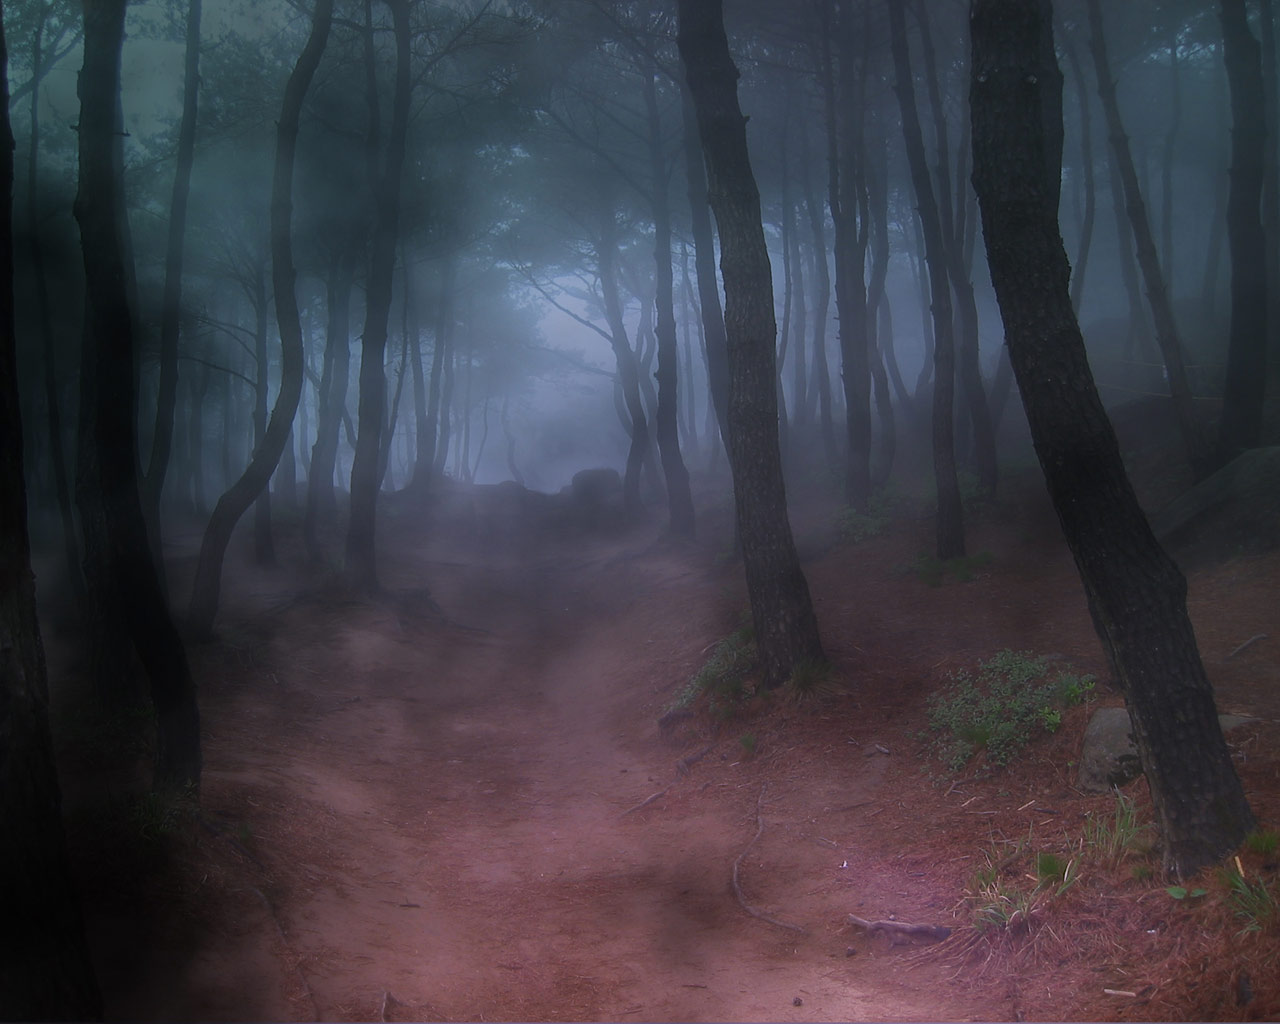 darkness-fog-wallpaper-wp424852-1